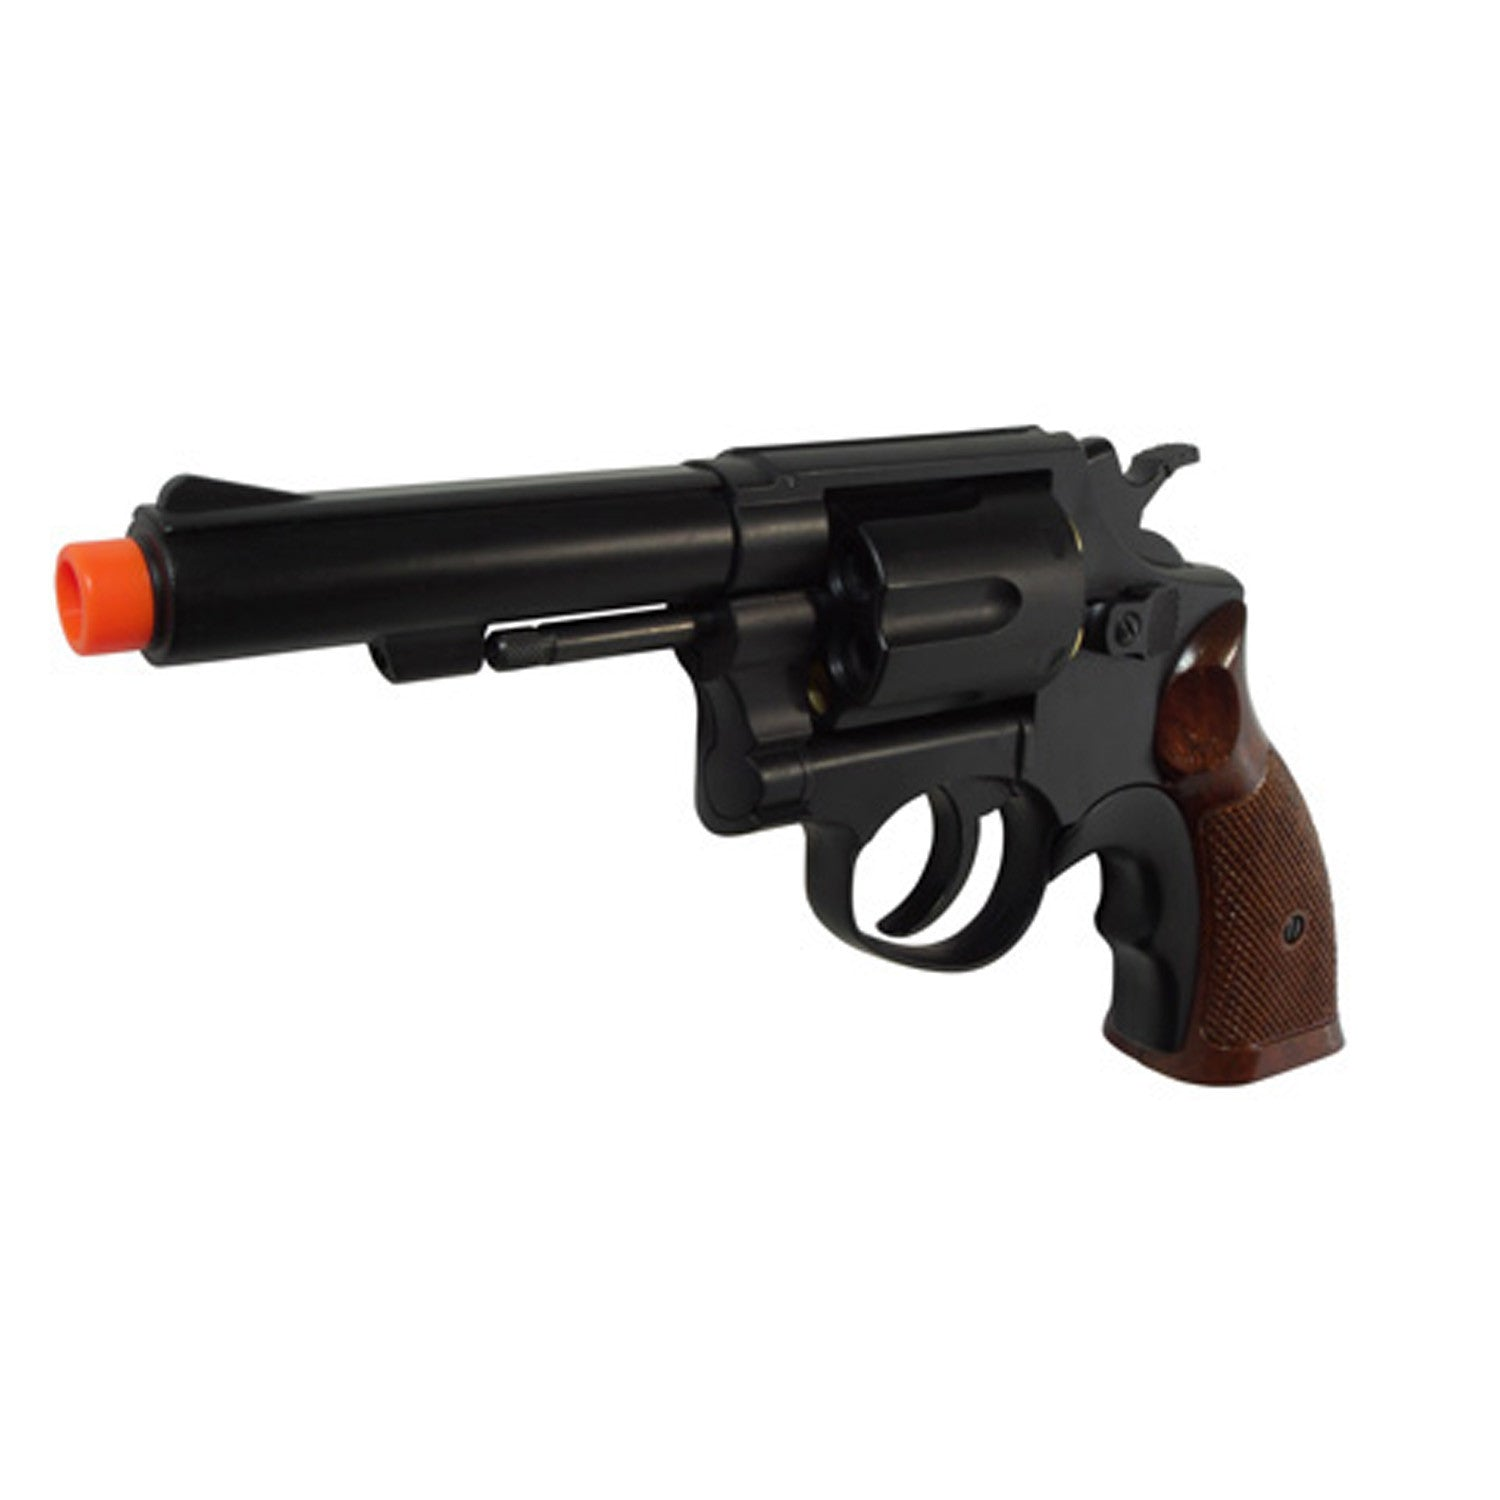 HFC HG-131B Gas Powered revolver pistol - -Full Metal Barrel M10 Gas Revolver with Metal Shell Set and Hard Guncase.  -FPS: 250 FPS  - Material ABS / Metal  -  Length - 230mm Barrel Length  - 6 rounds